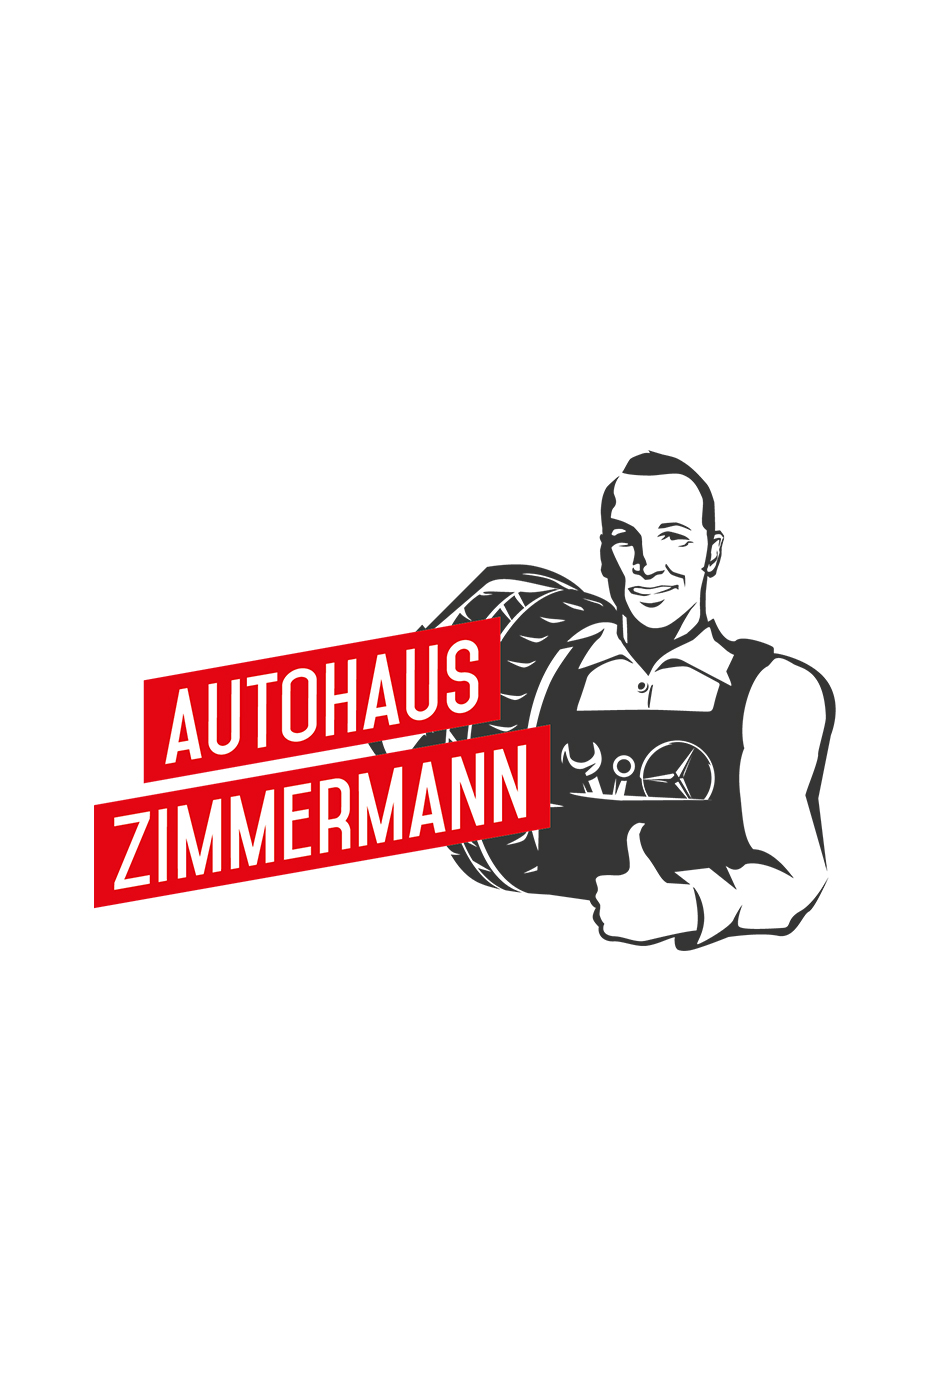 ah-zimmermann-team